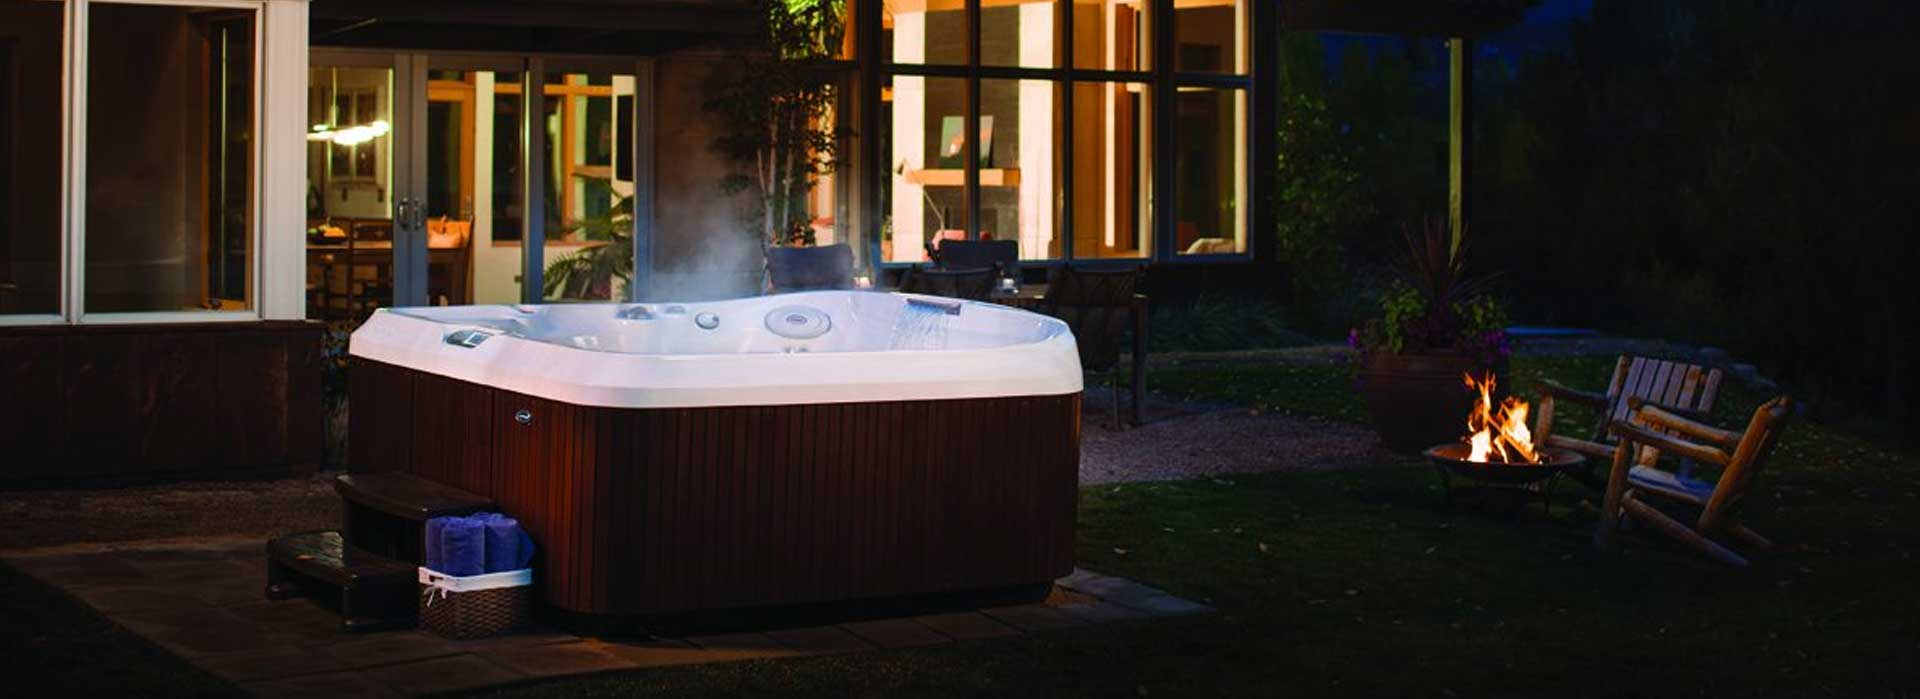 Jacuzzi J 415 Hot Tubs In Lewisville Amp North Dallas